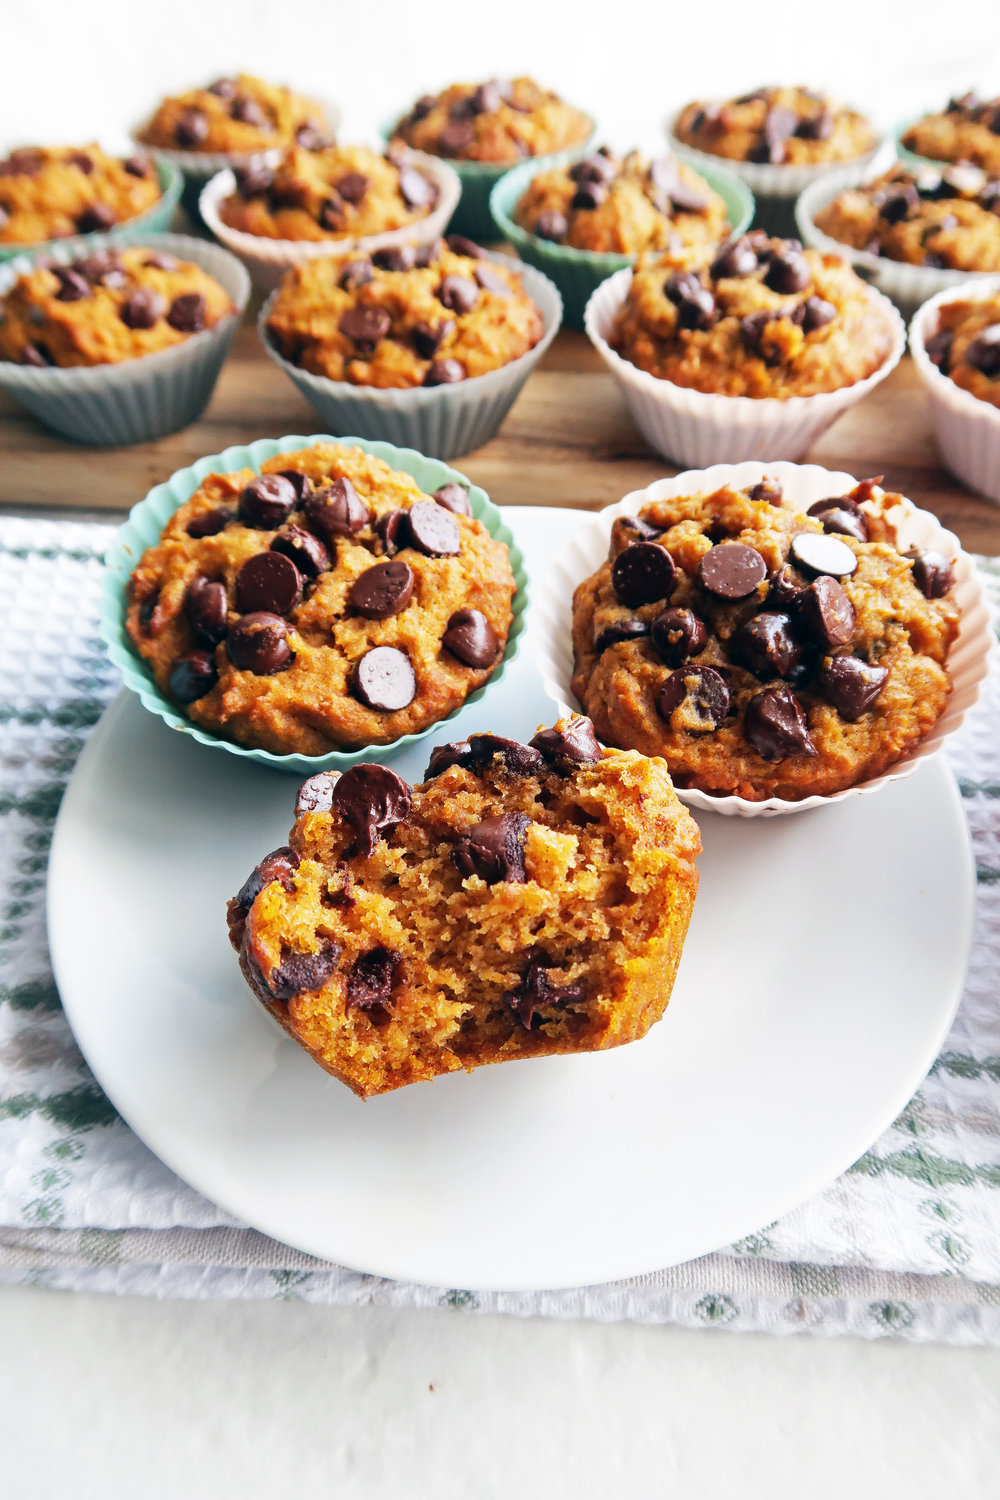 Close-up shot of a pumpkin chocolate chip whole wheat muffin with a big bite taken out of it with muffins in the background.